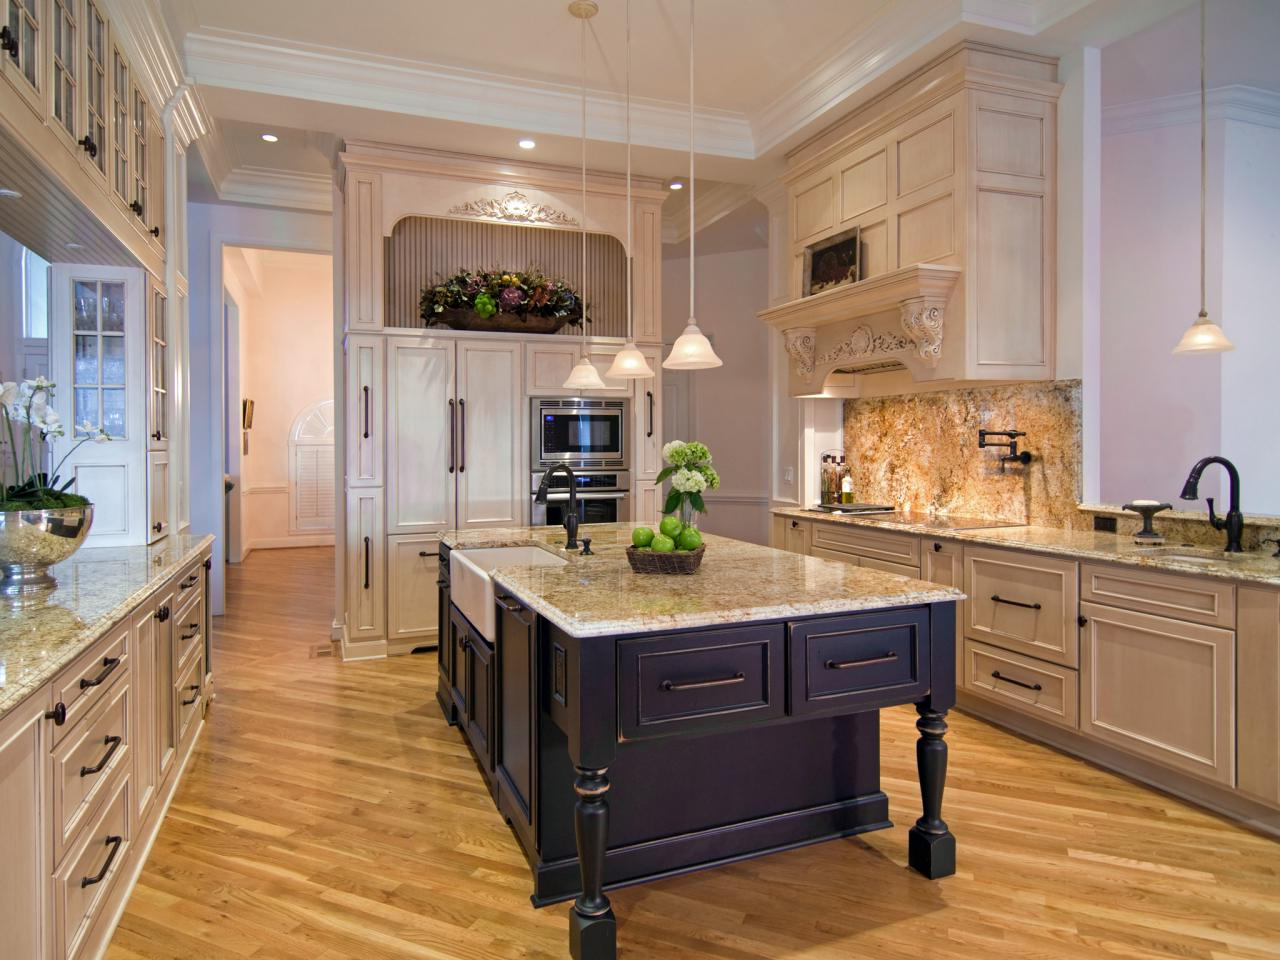 Older Home Kitchen Remodeling Ideas | Roy Home Design on Kitchen Remodeling Ideas  id=53794